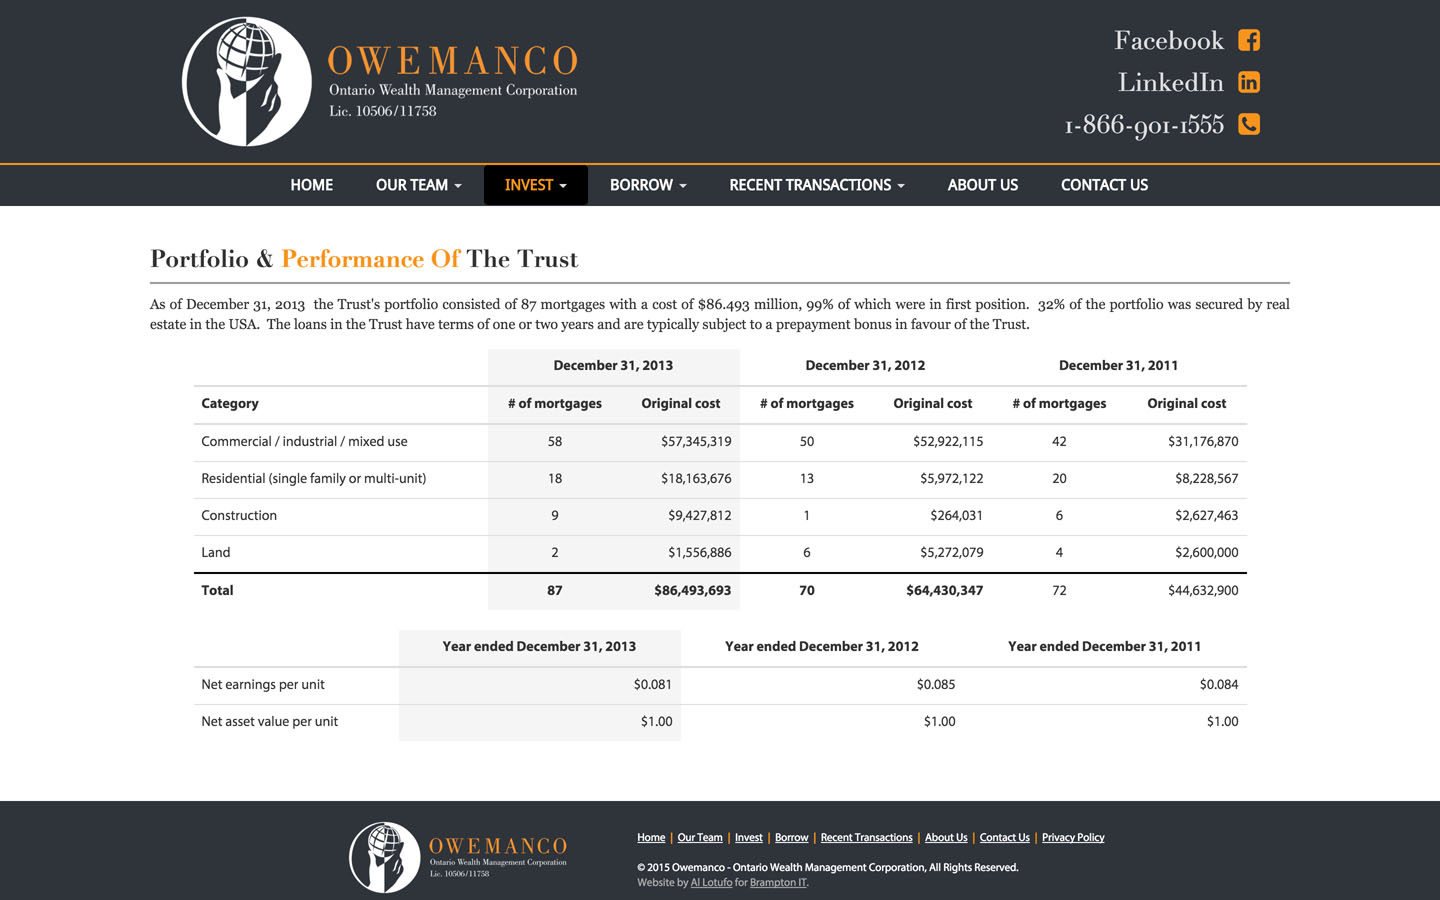 Performance of the Trust Page